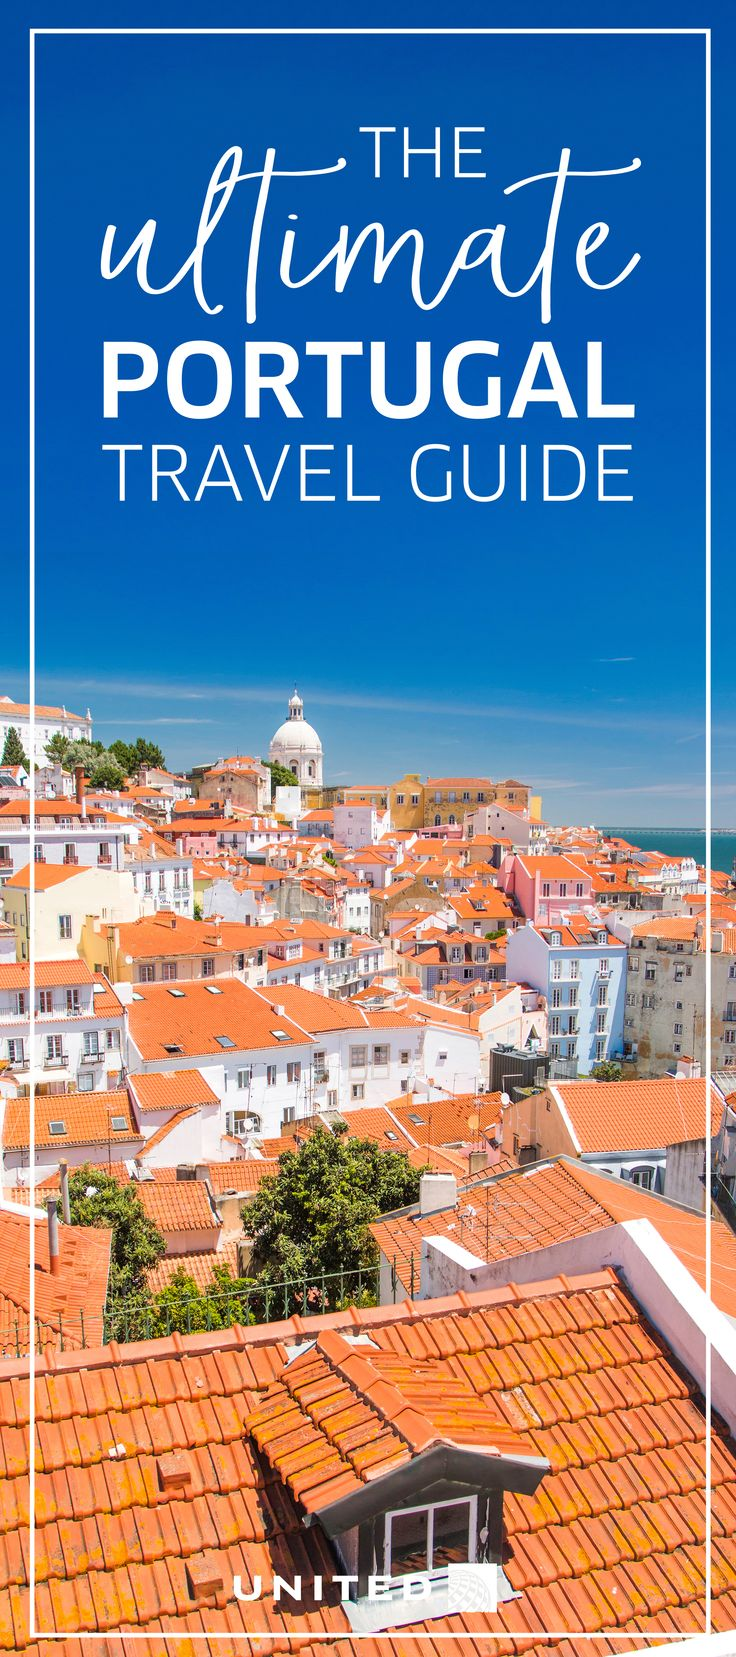 Travel guide to Porto and Lisbon, Portugal